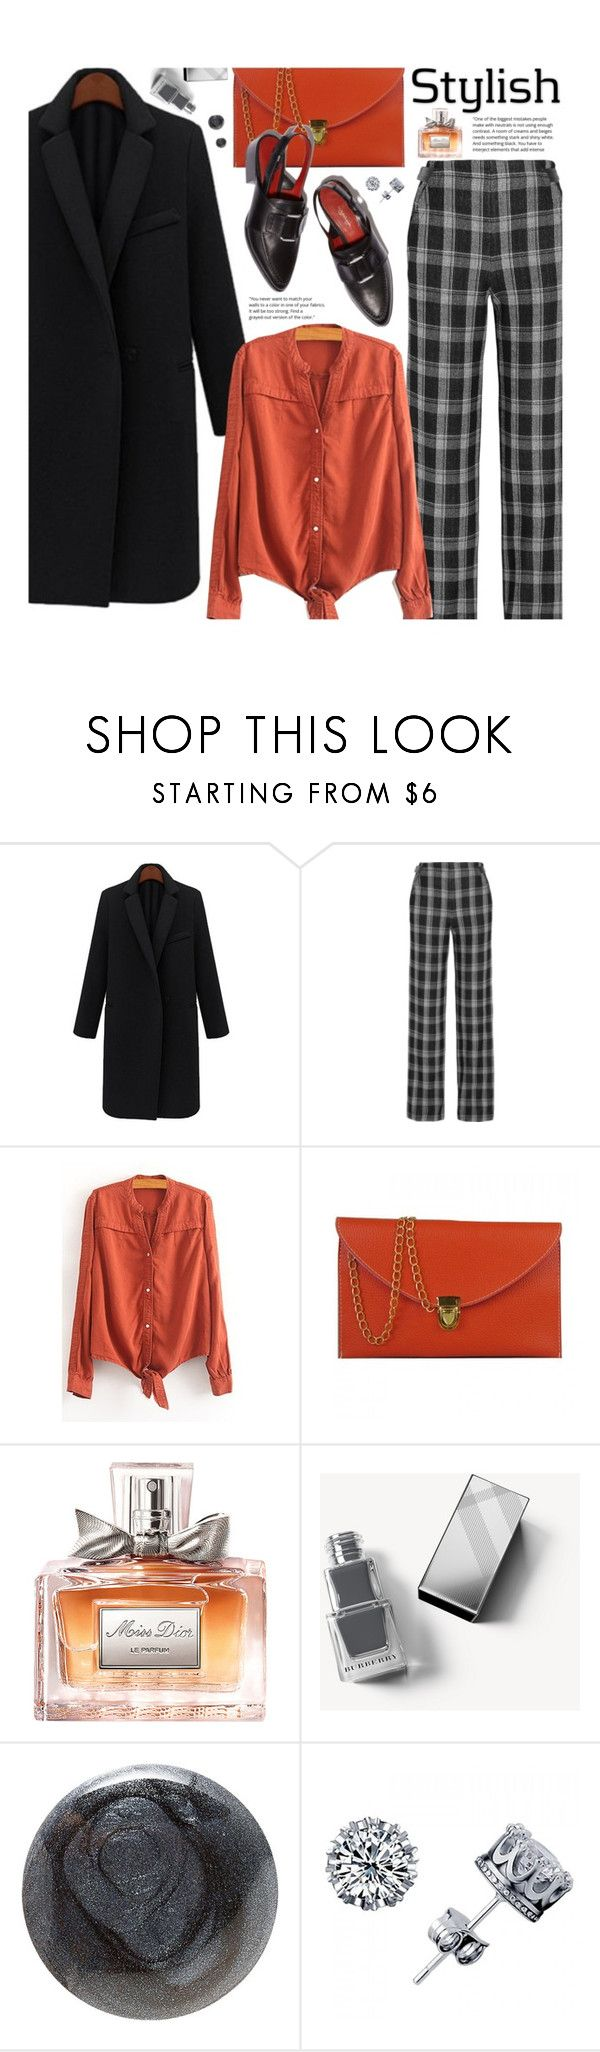 """Street Chic Oversized Coats"" by beebeely-look ❤ liked on Polyvore featuring Proenza Schouler, Christian Dior, Burberry, Christian Louboutin, StreetStyle, plaid, StreetChic, oversizedcoats and twinkledeals"